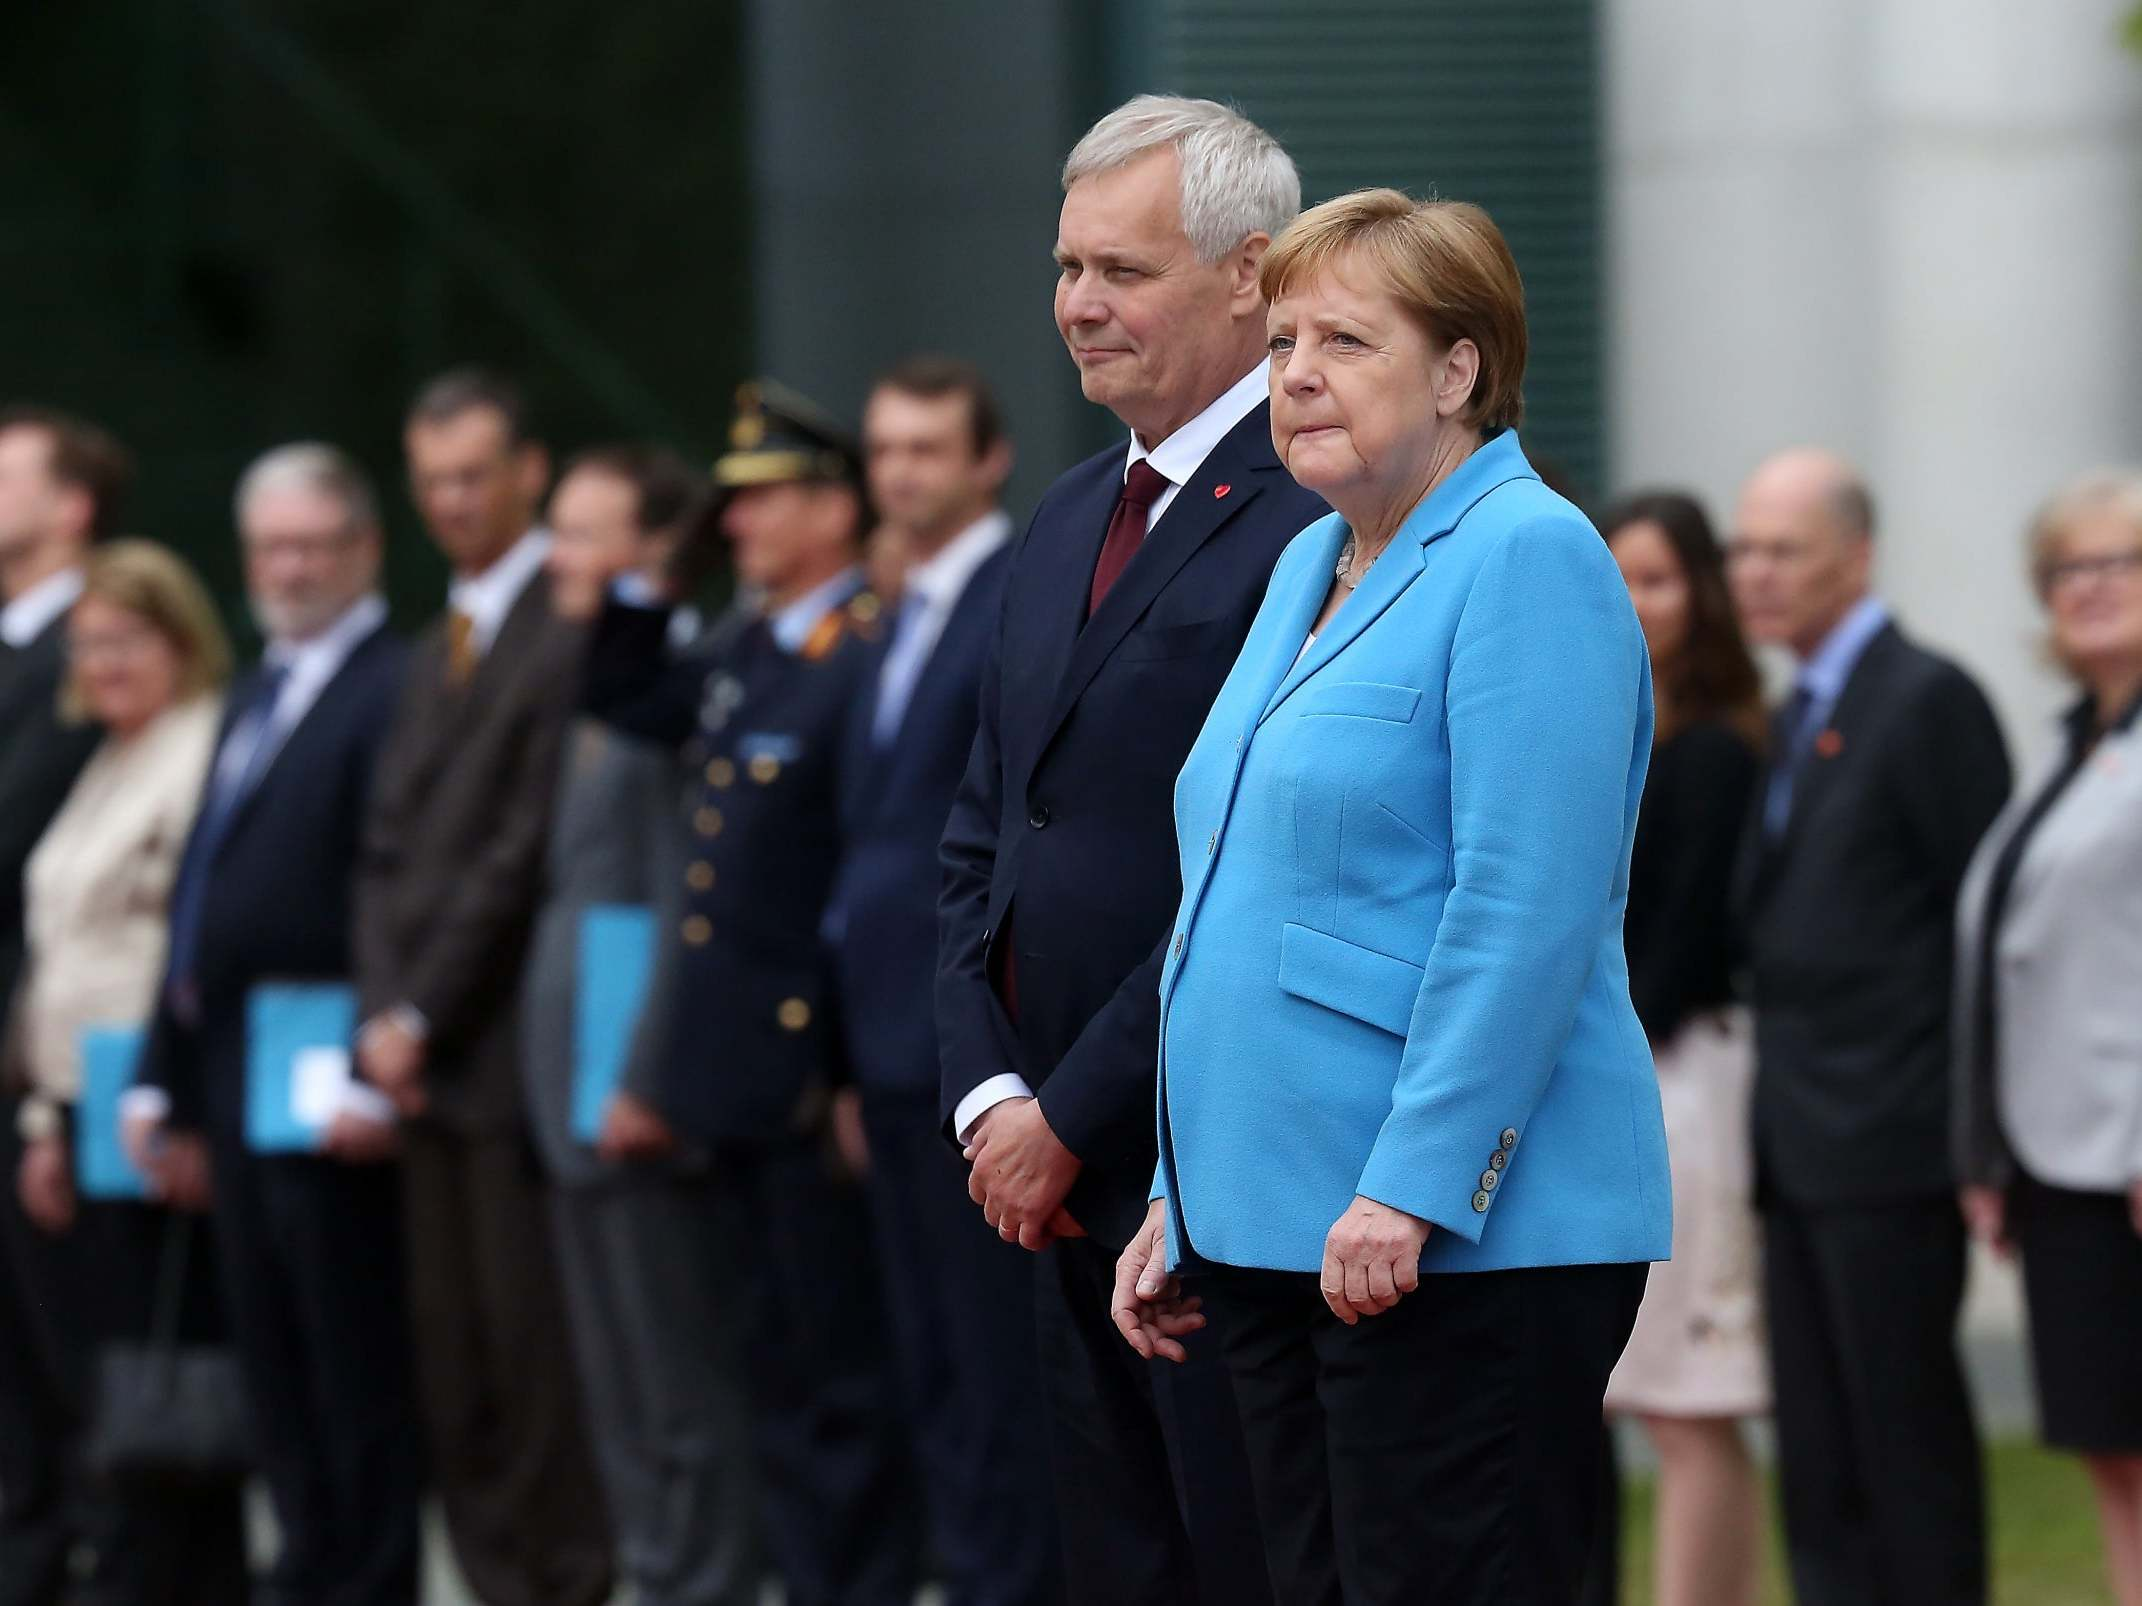 Berlin - latest news, breaking stories and comment - The Independent